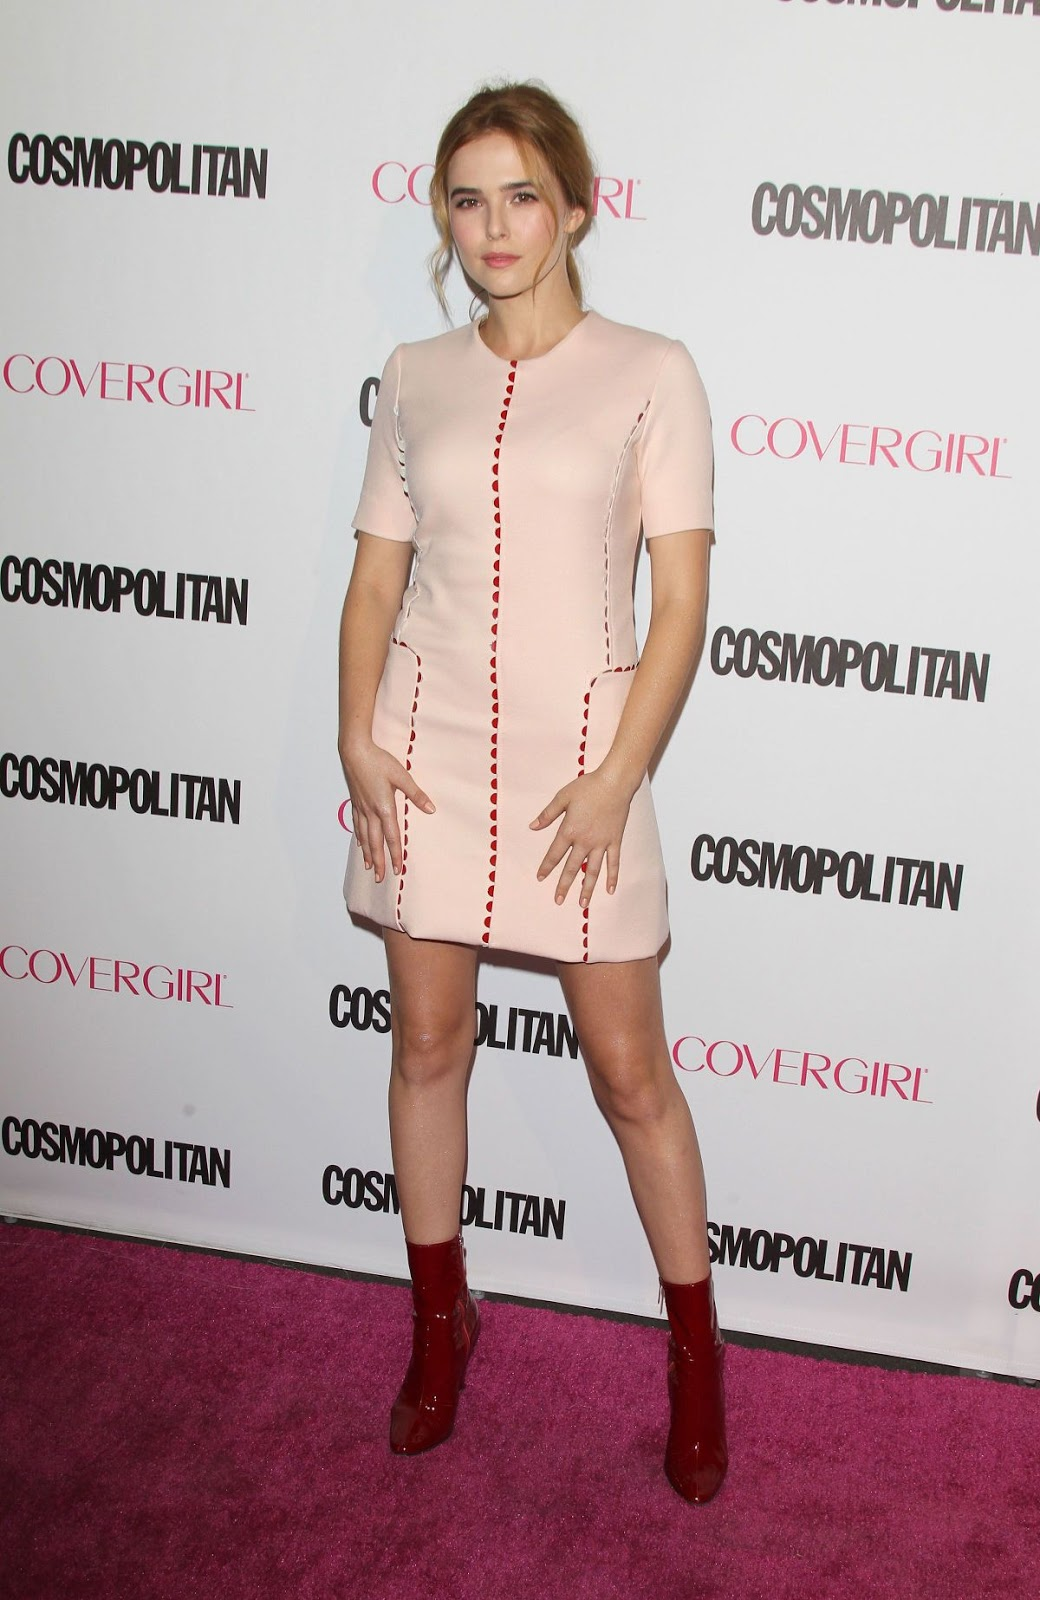 Everybody Wants Some actress Zoey Deutch at the Cosmopolitan's 50th Birthday Celebration